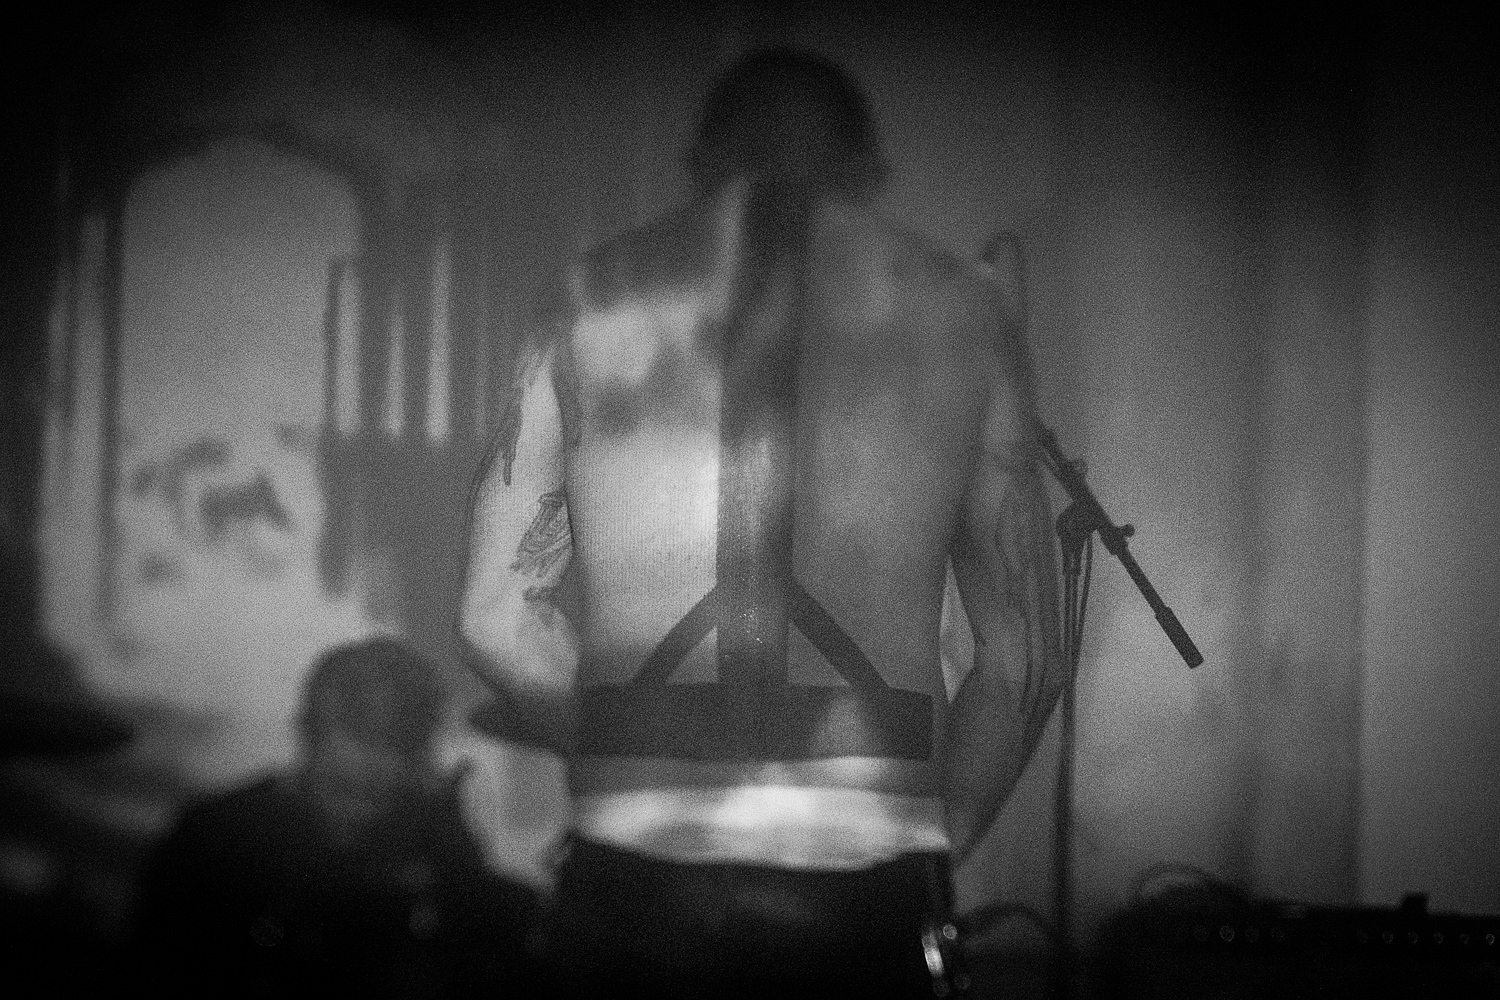 20190510-019-Amenra-@-Juha-Hallschlag-Cred_@indie.and_.more_.jpg